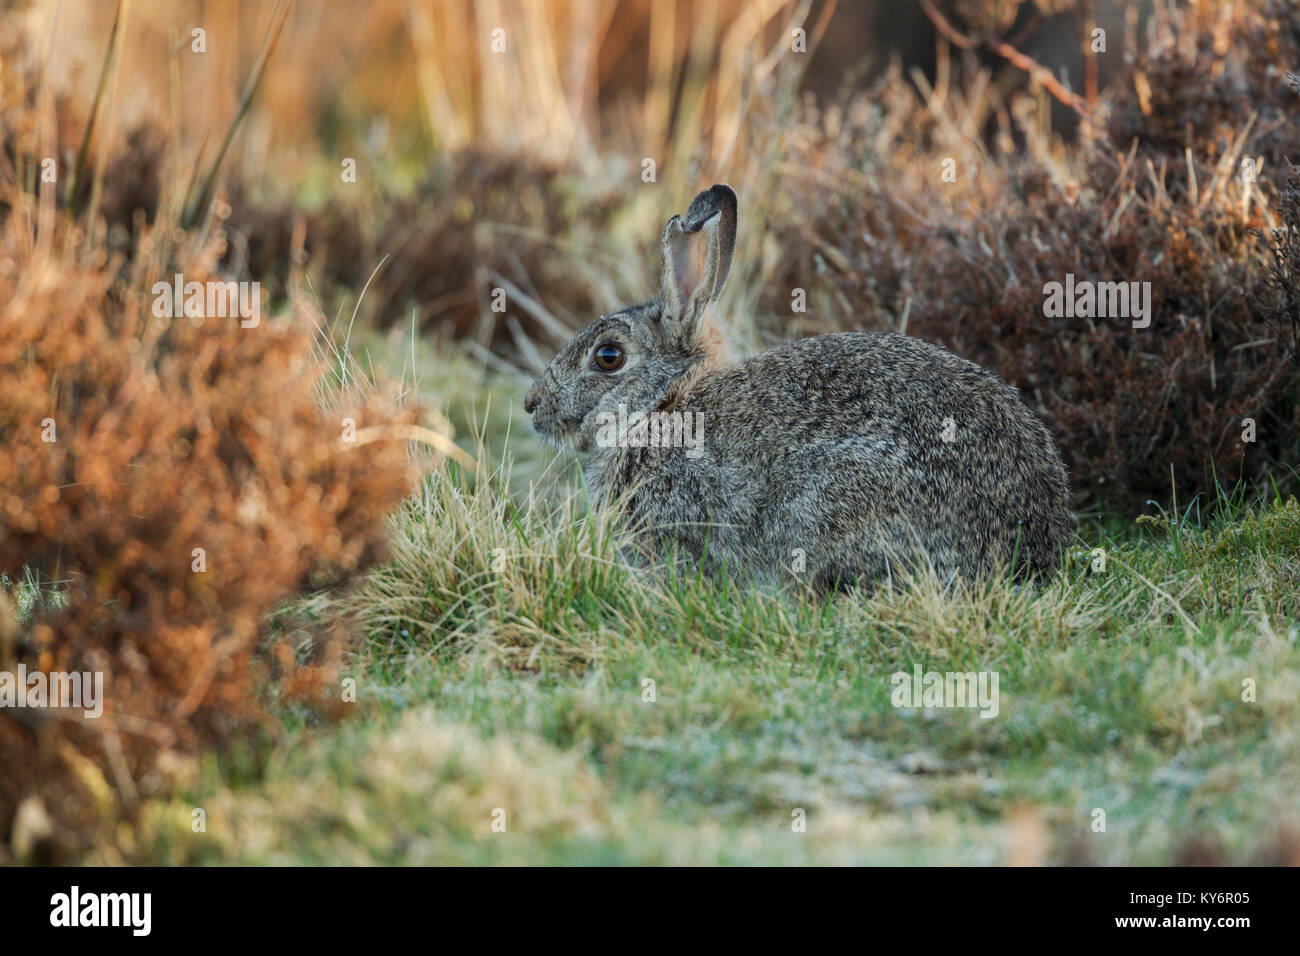 Wild rabbit, Latin name Oryctolagus cuniculus, a mature rabbit with damaged ears and matted fur sitting between - Stock Image